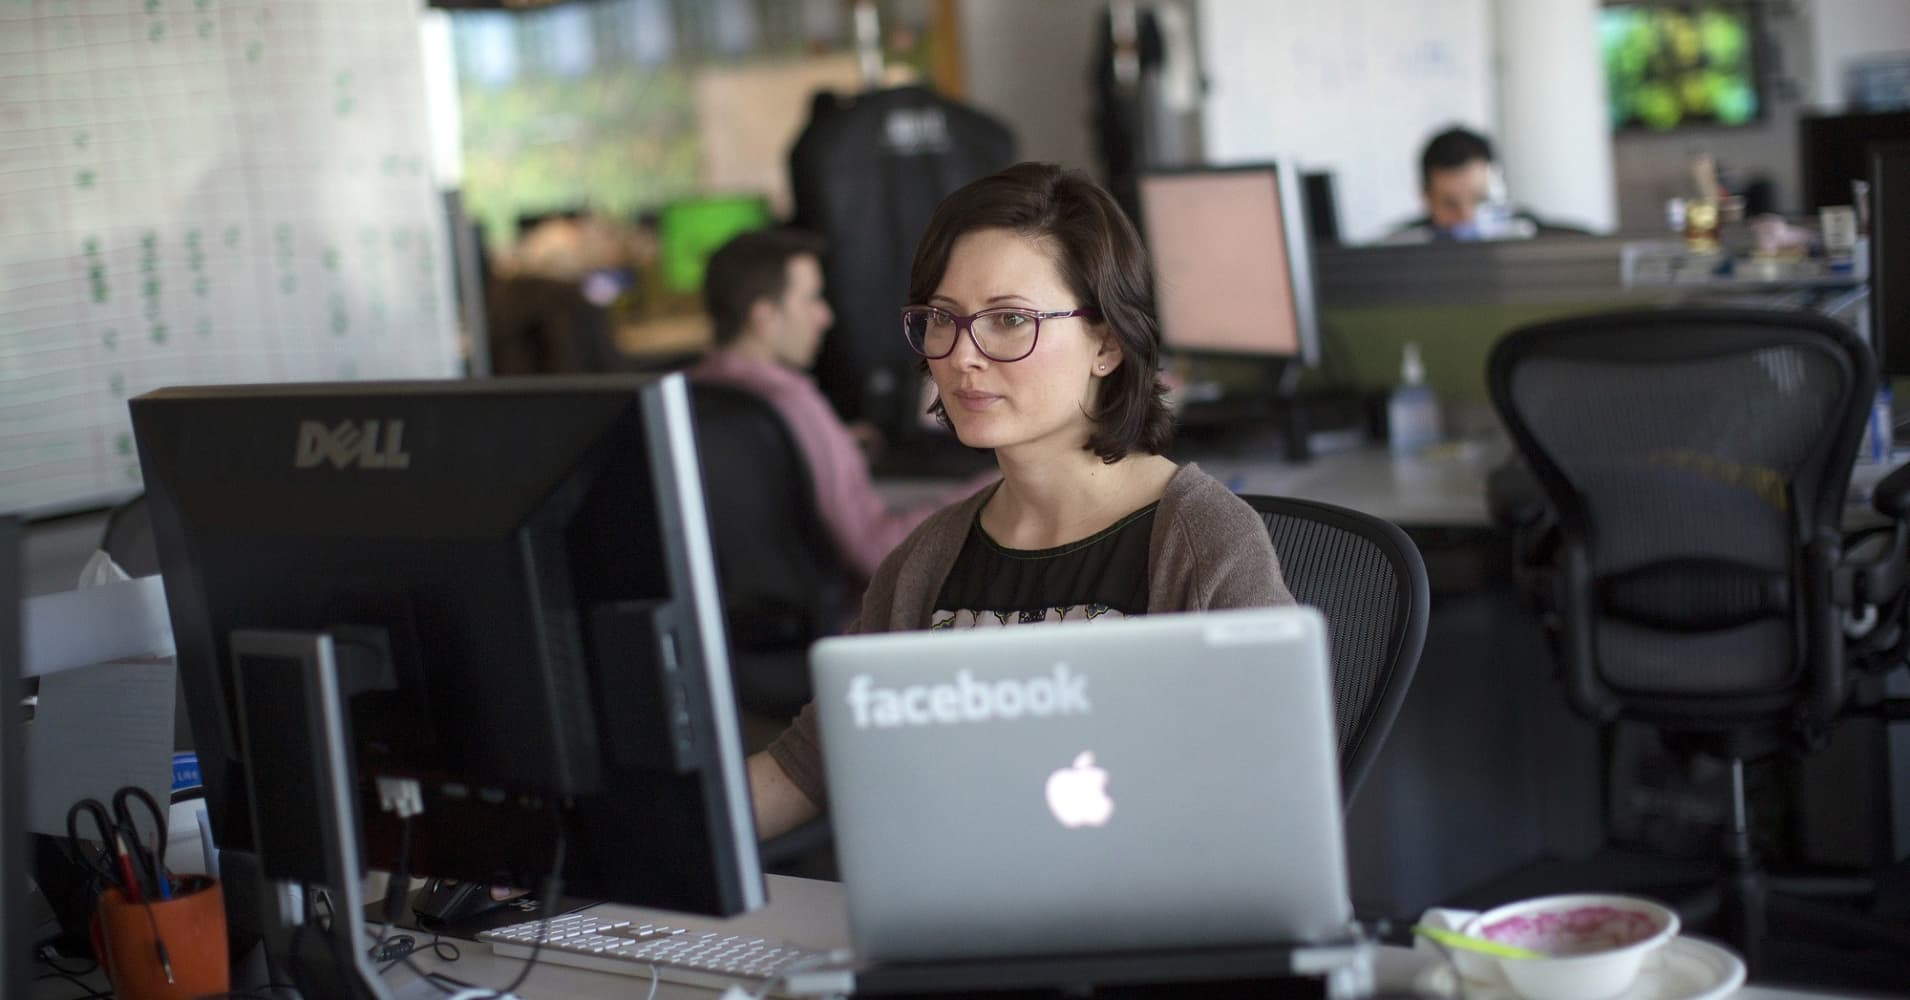 Employees at Facebook are seen working inside the office at Facebook Inc.'s European headquarters at Hanover Quay in Dublin, Ireland.